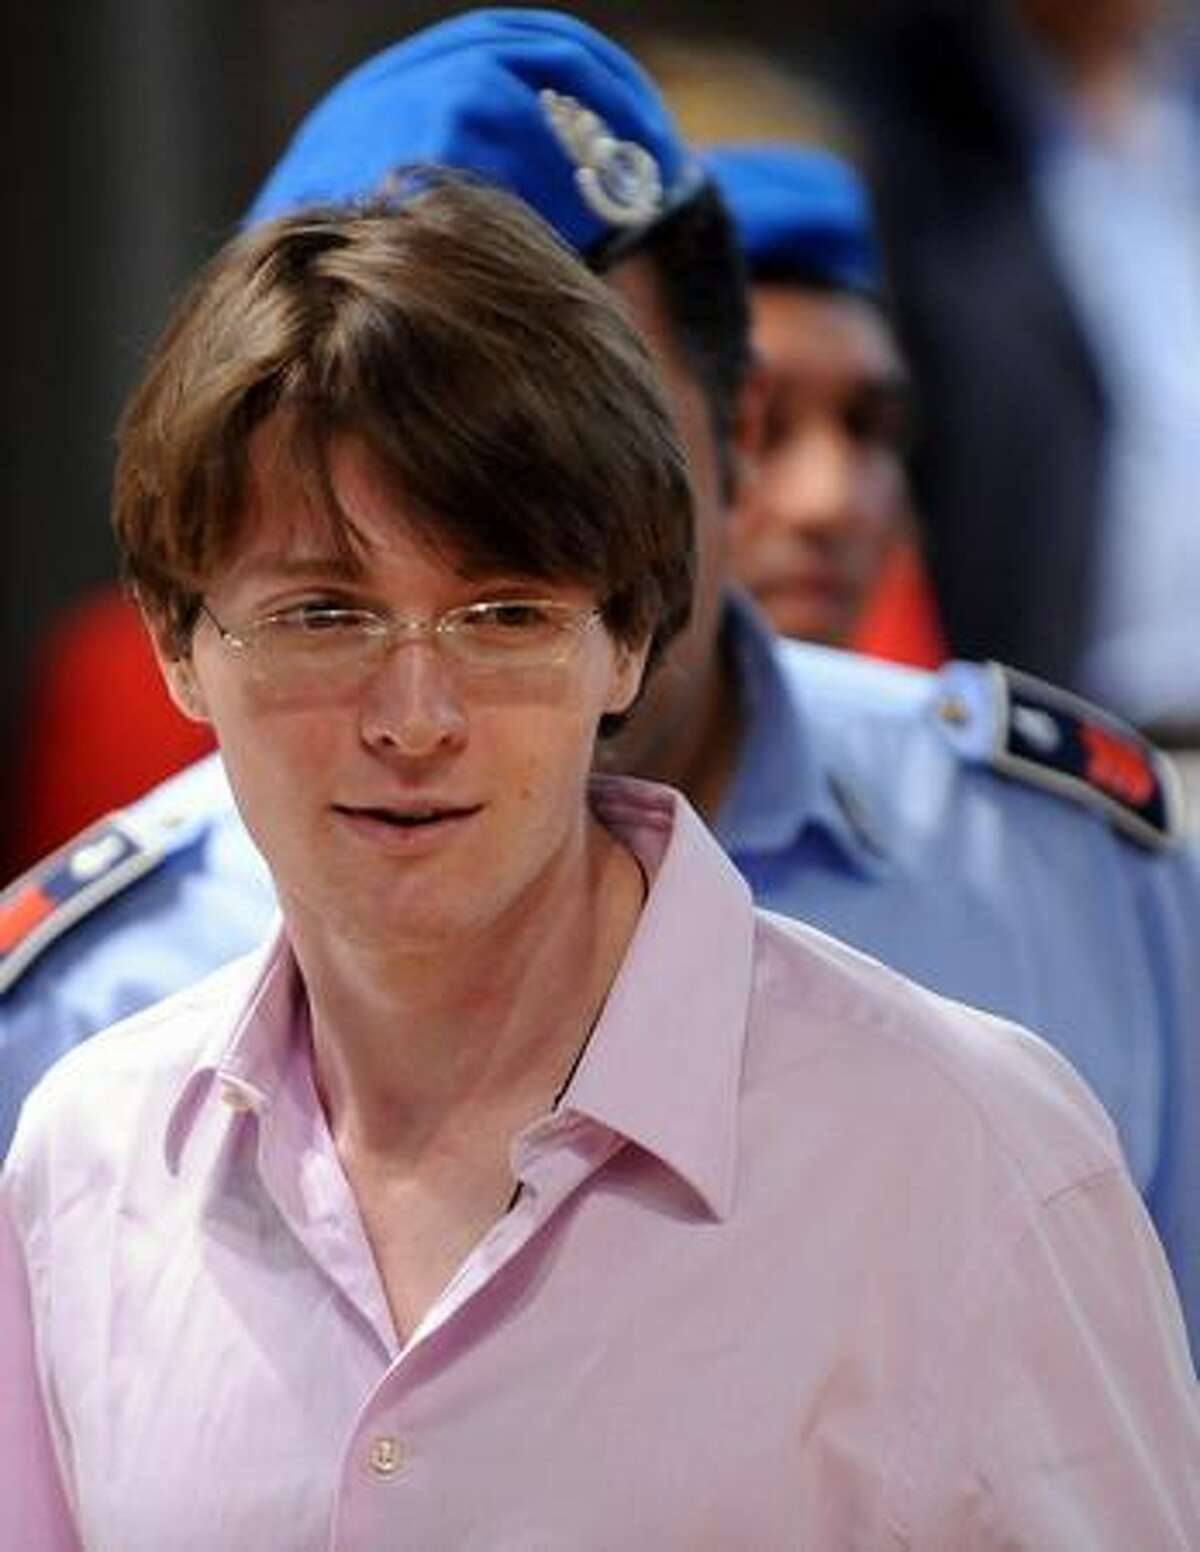 Italian student Raffaele Sollecito, accused of killing with his ex-girlfriend U.S. student Amanda Knox (not pictured), Knox's British housemate Meredith Kercher two-years ago, takes place during his trial on Friday in the courtroom in Perugia. U.S.'s Amanda Knox was testifying during this court session for the first time in her sex-murder trial, with the American accused of taking part in the 2007 killing of her British housemate Meredith Kercher in Italy.